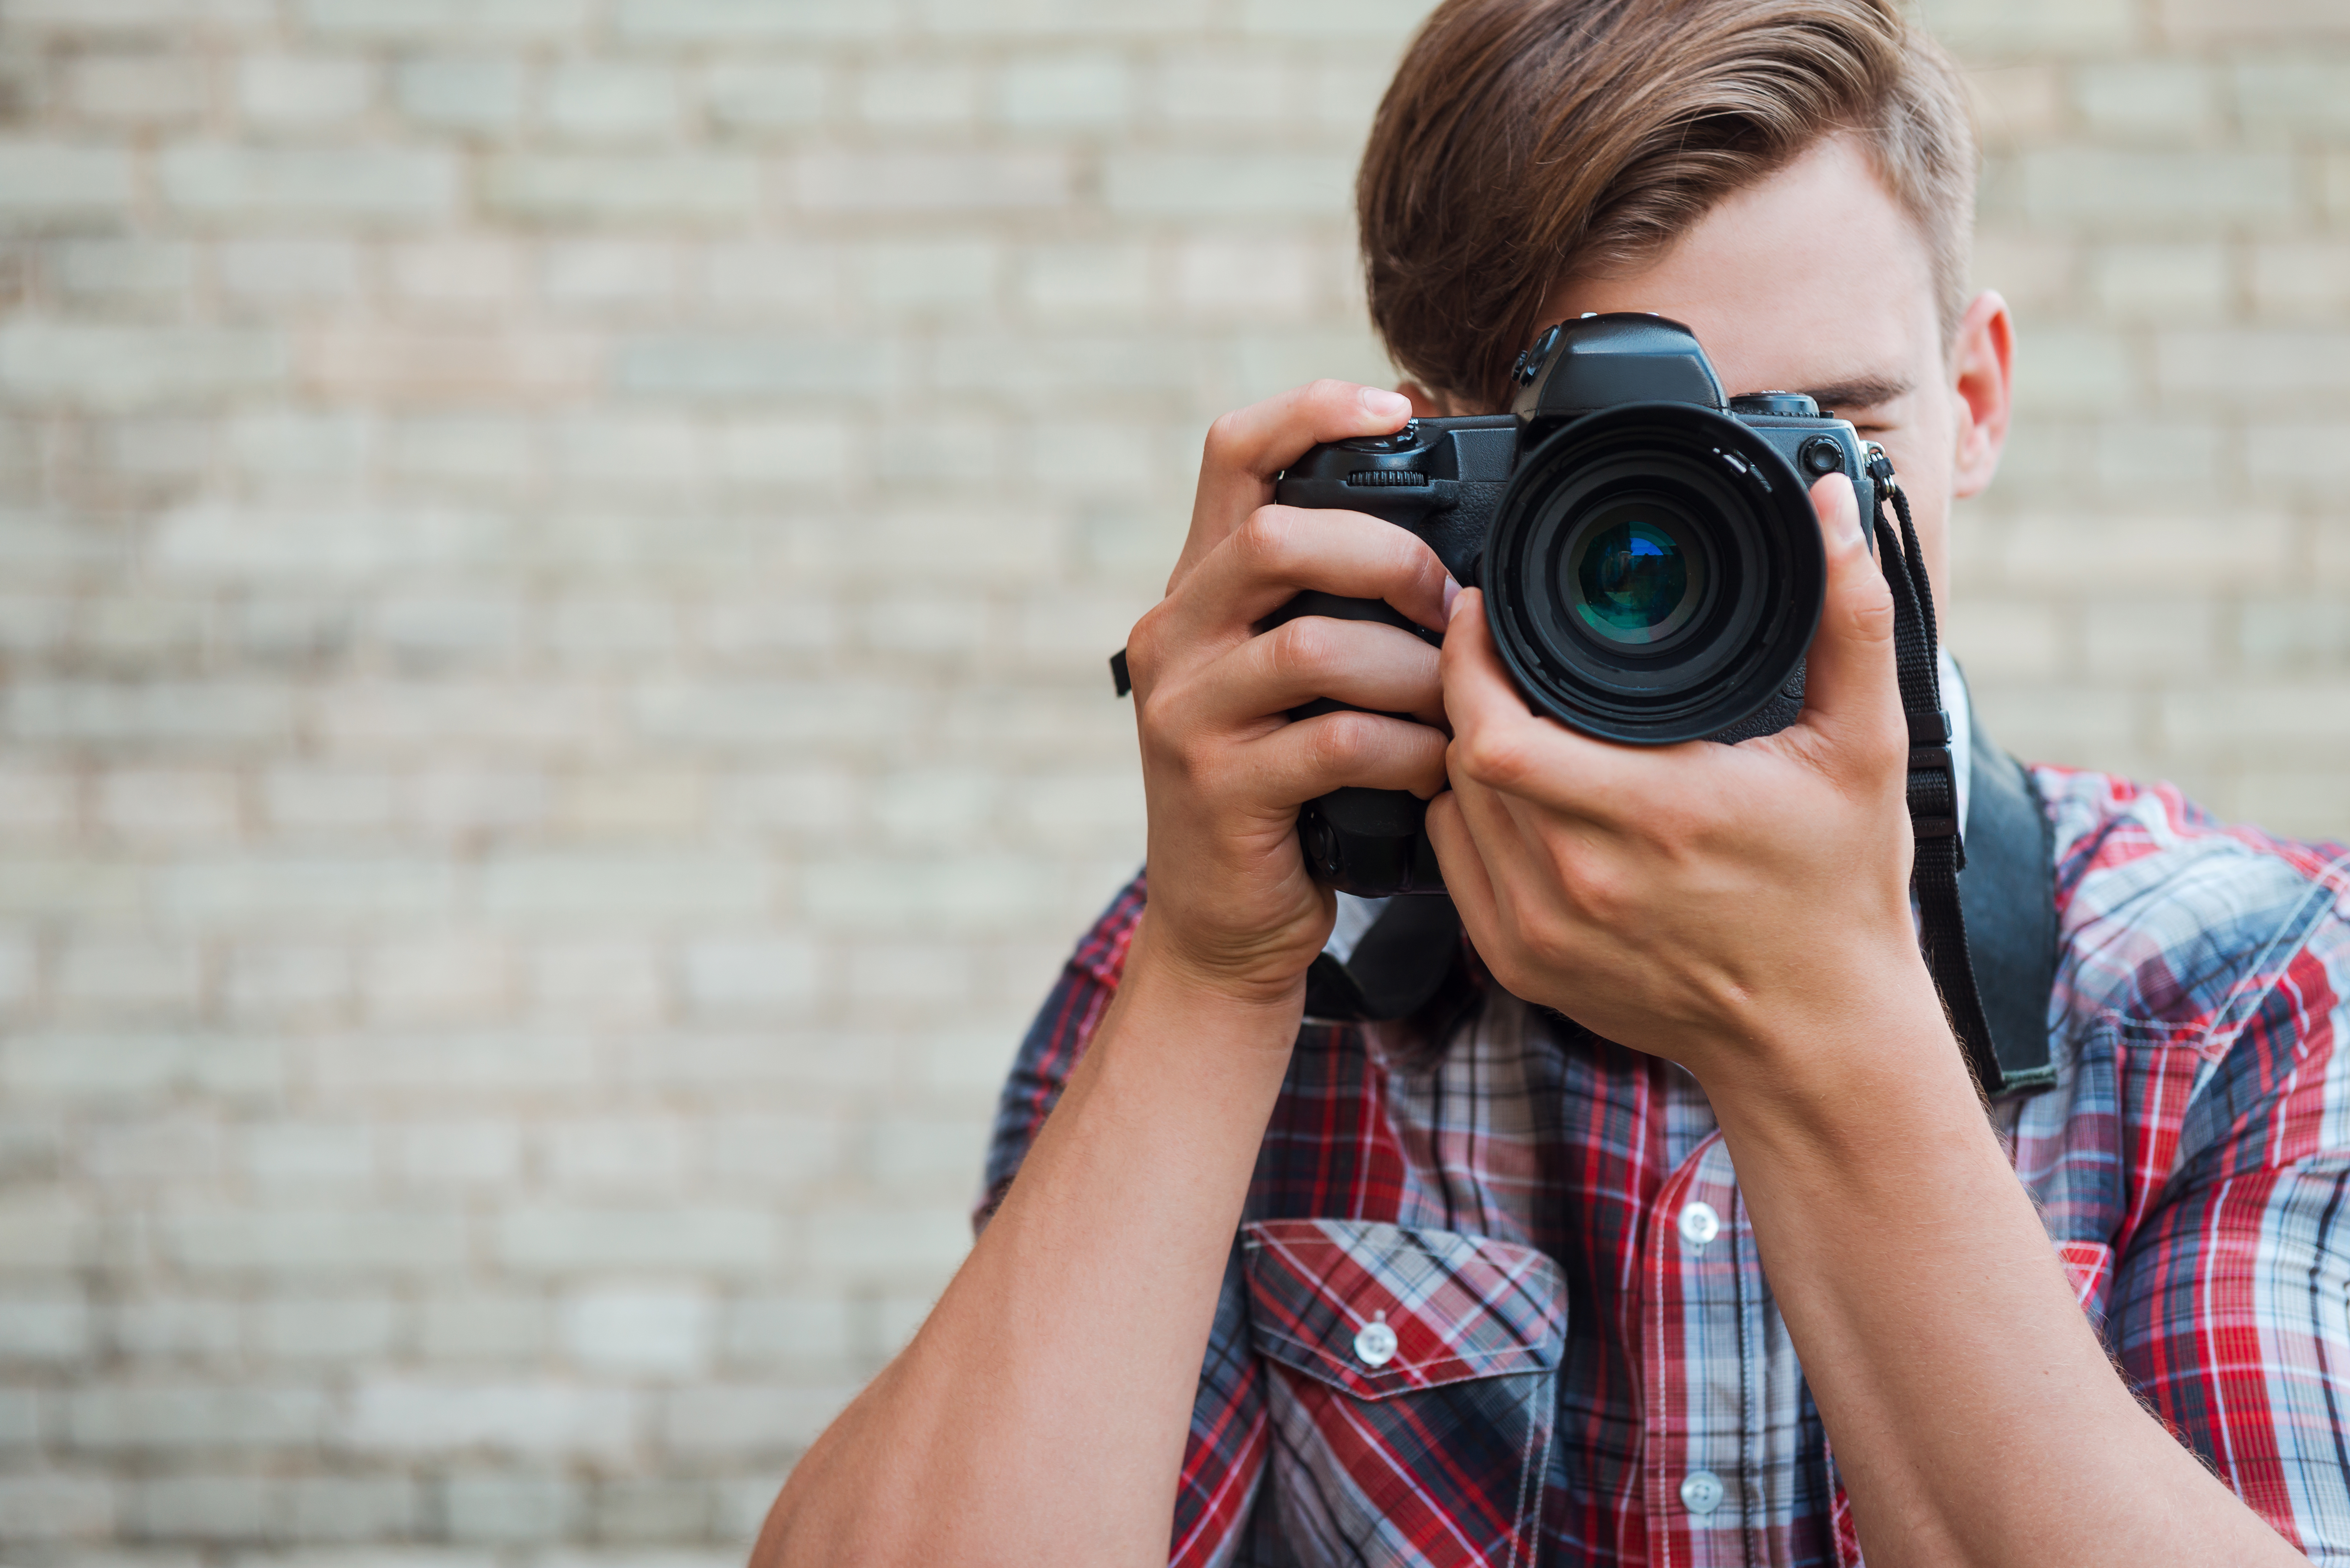 Laws About Being Photographed Without Permission